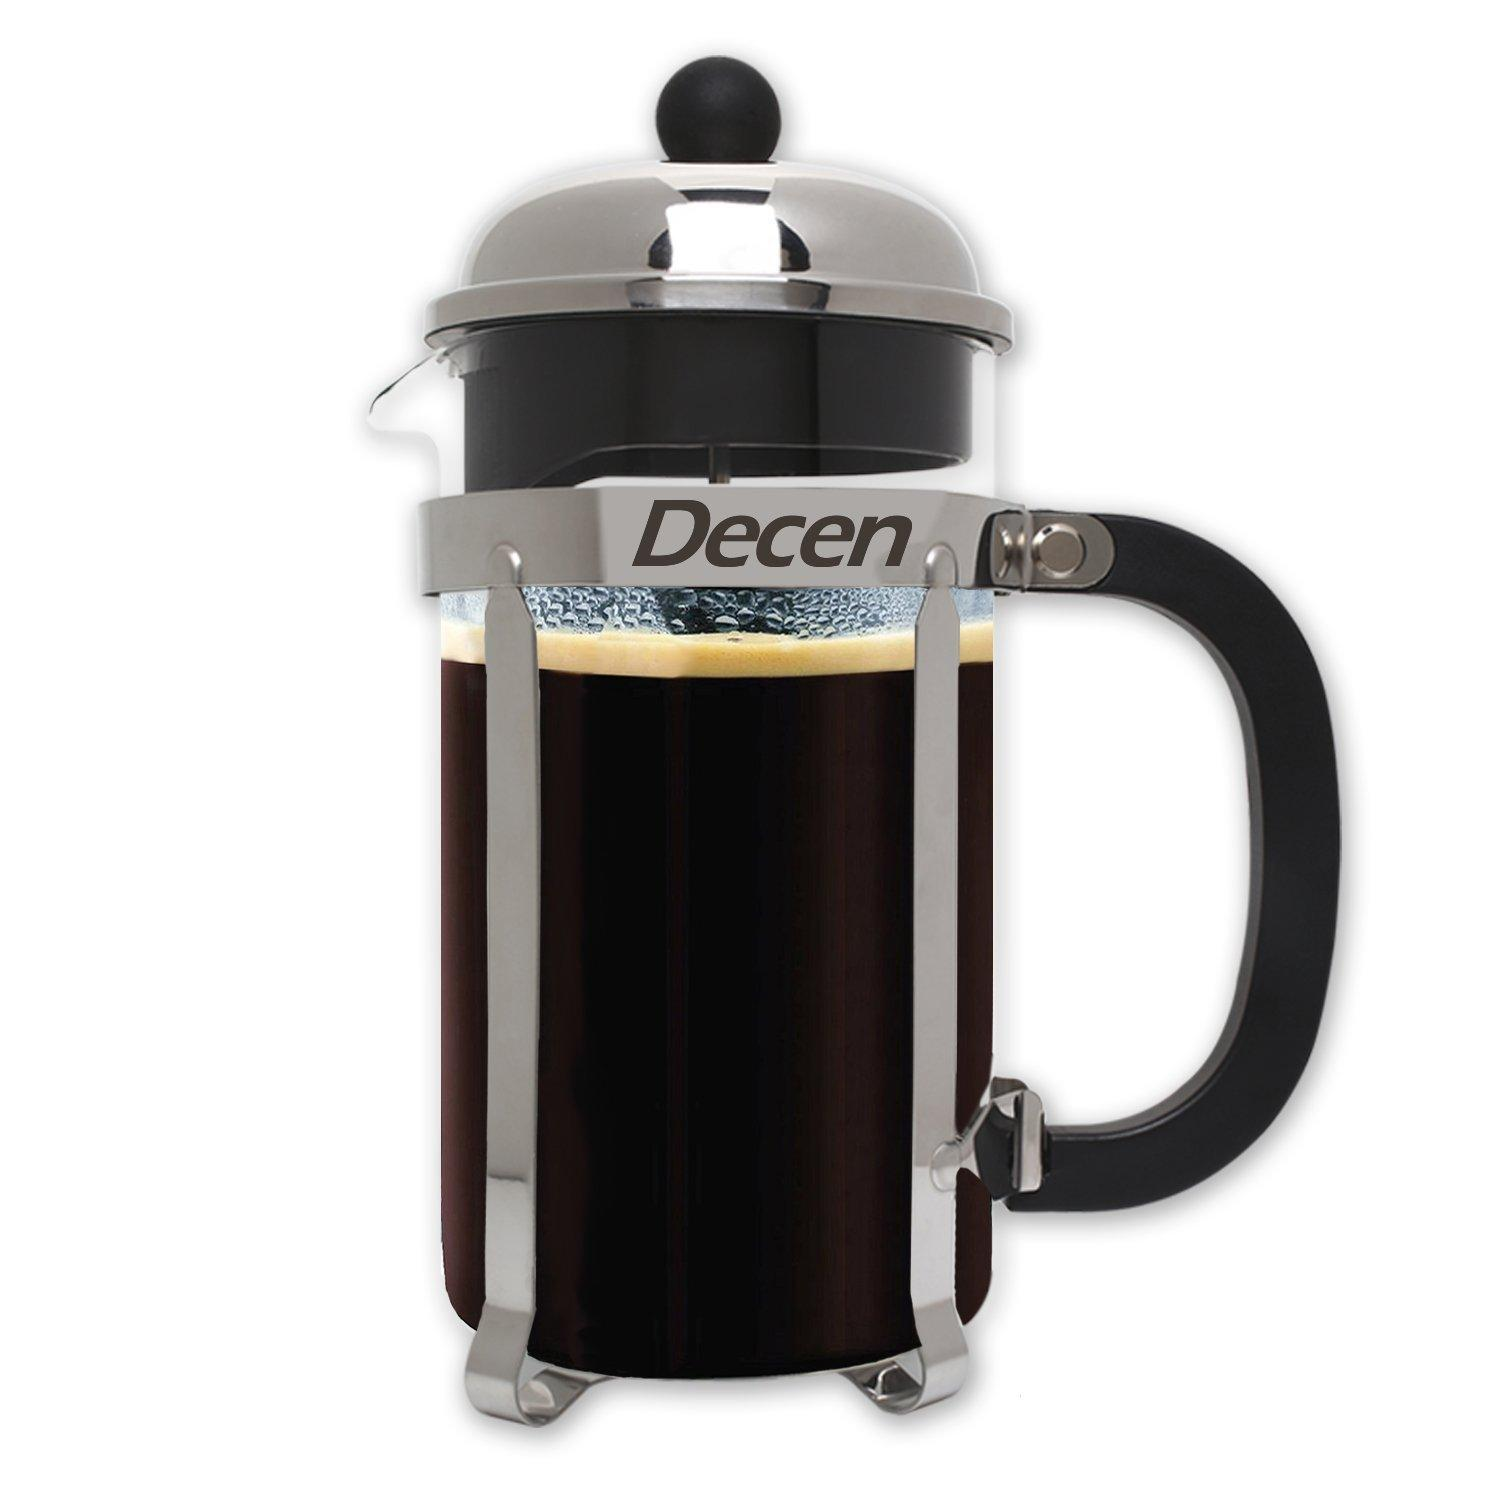 DECEN French Press Coffee Maker with Stainless Steel Holder 8 Cups/4 Mugs